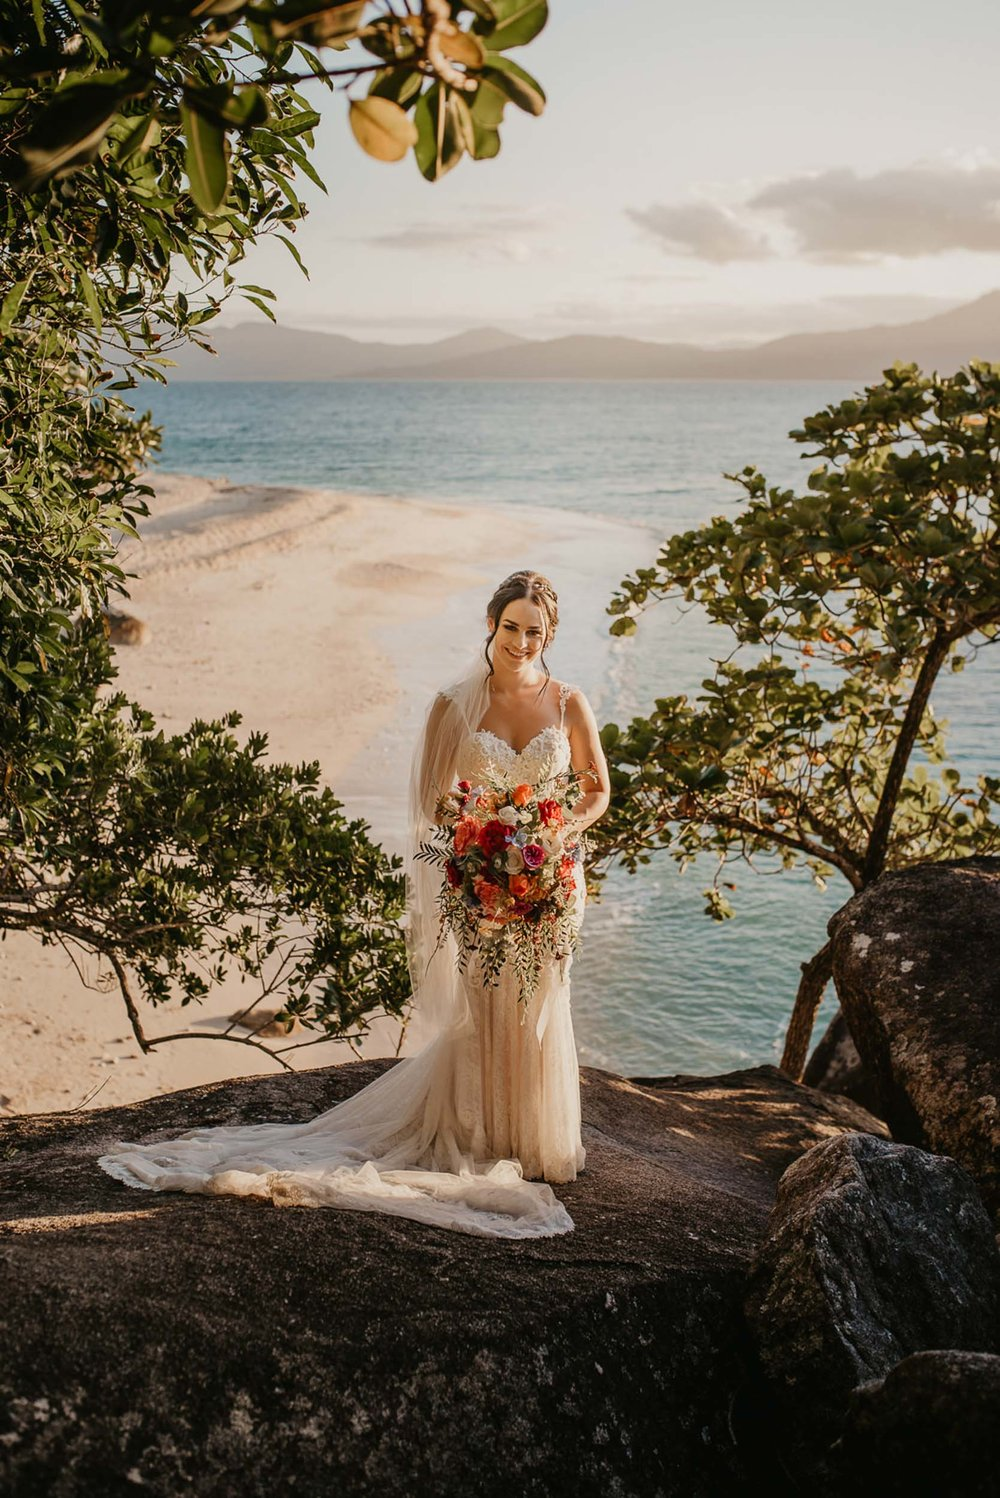 The Raw Photographer - Cairns Wedding Photographer - Fitzroy Island - Destination Wedding - Bride Dress - Groom Portrait - Queensland-34.jpg